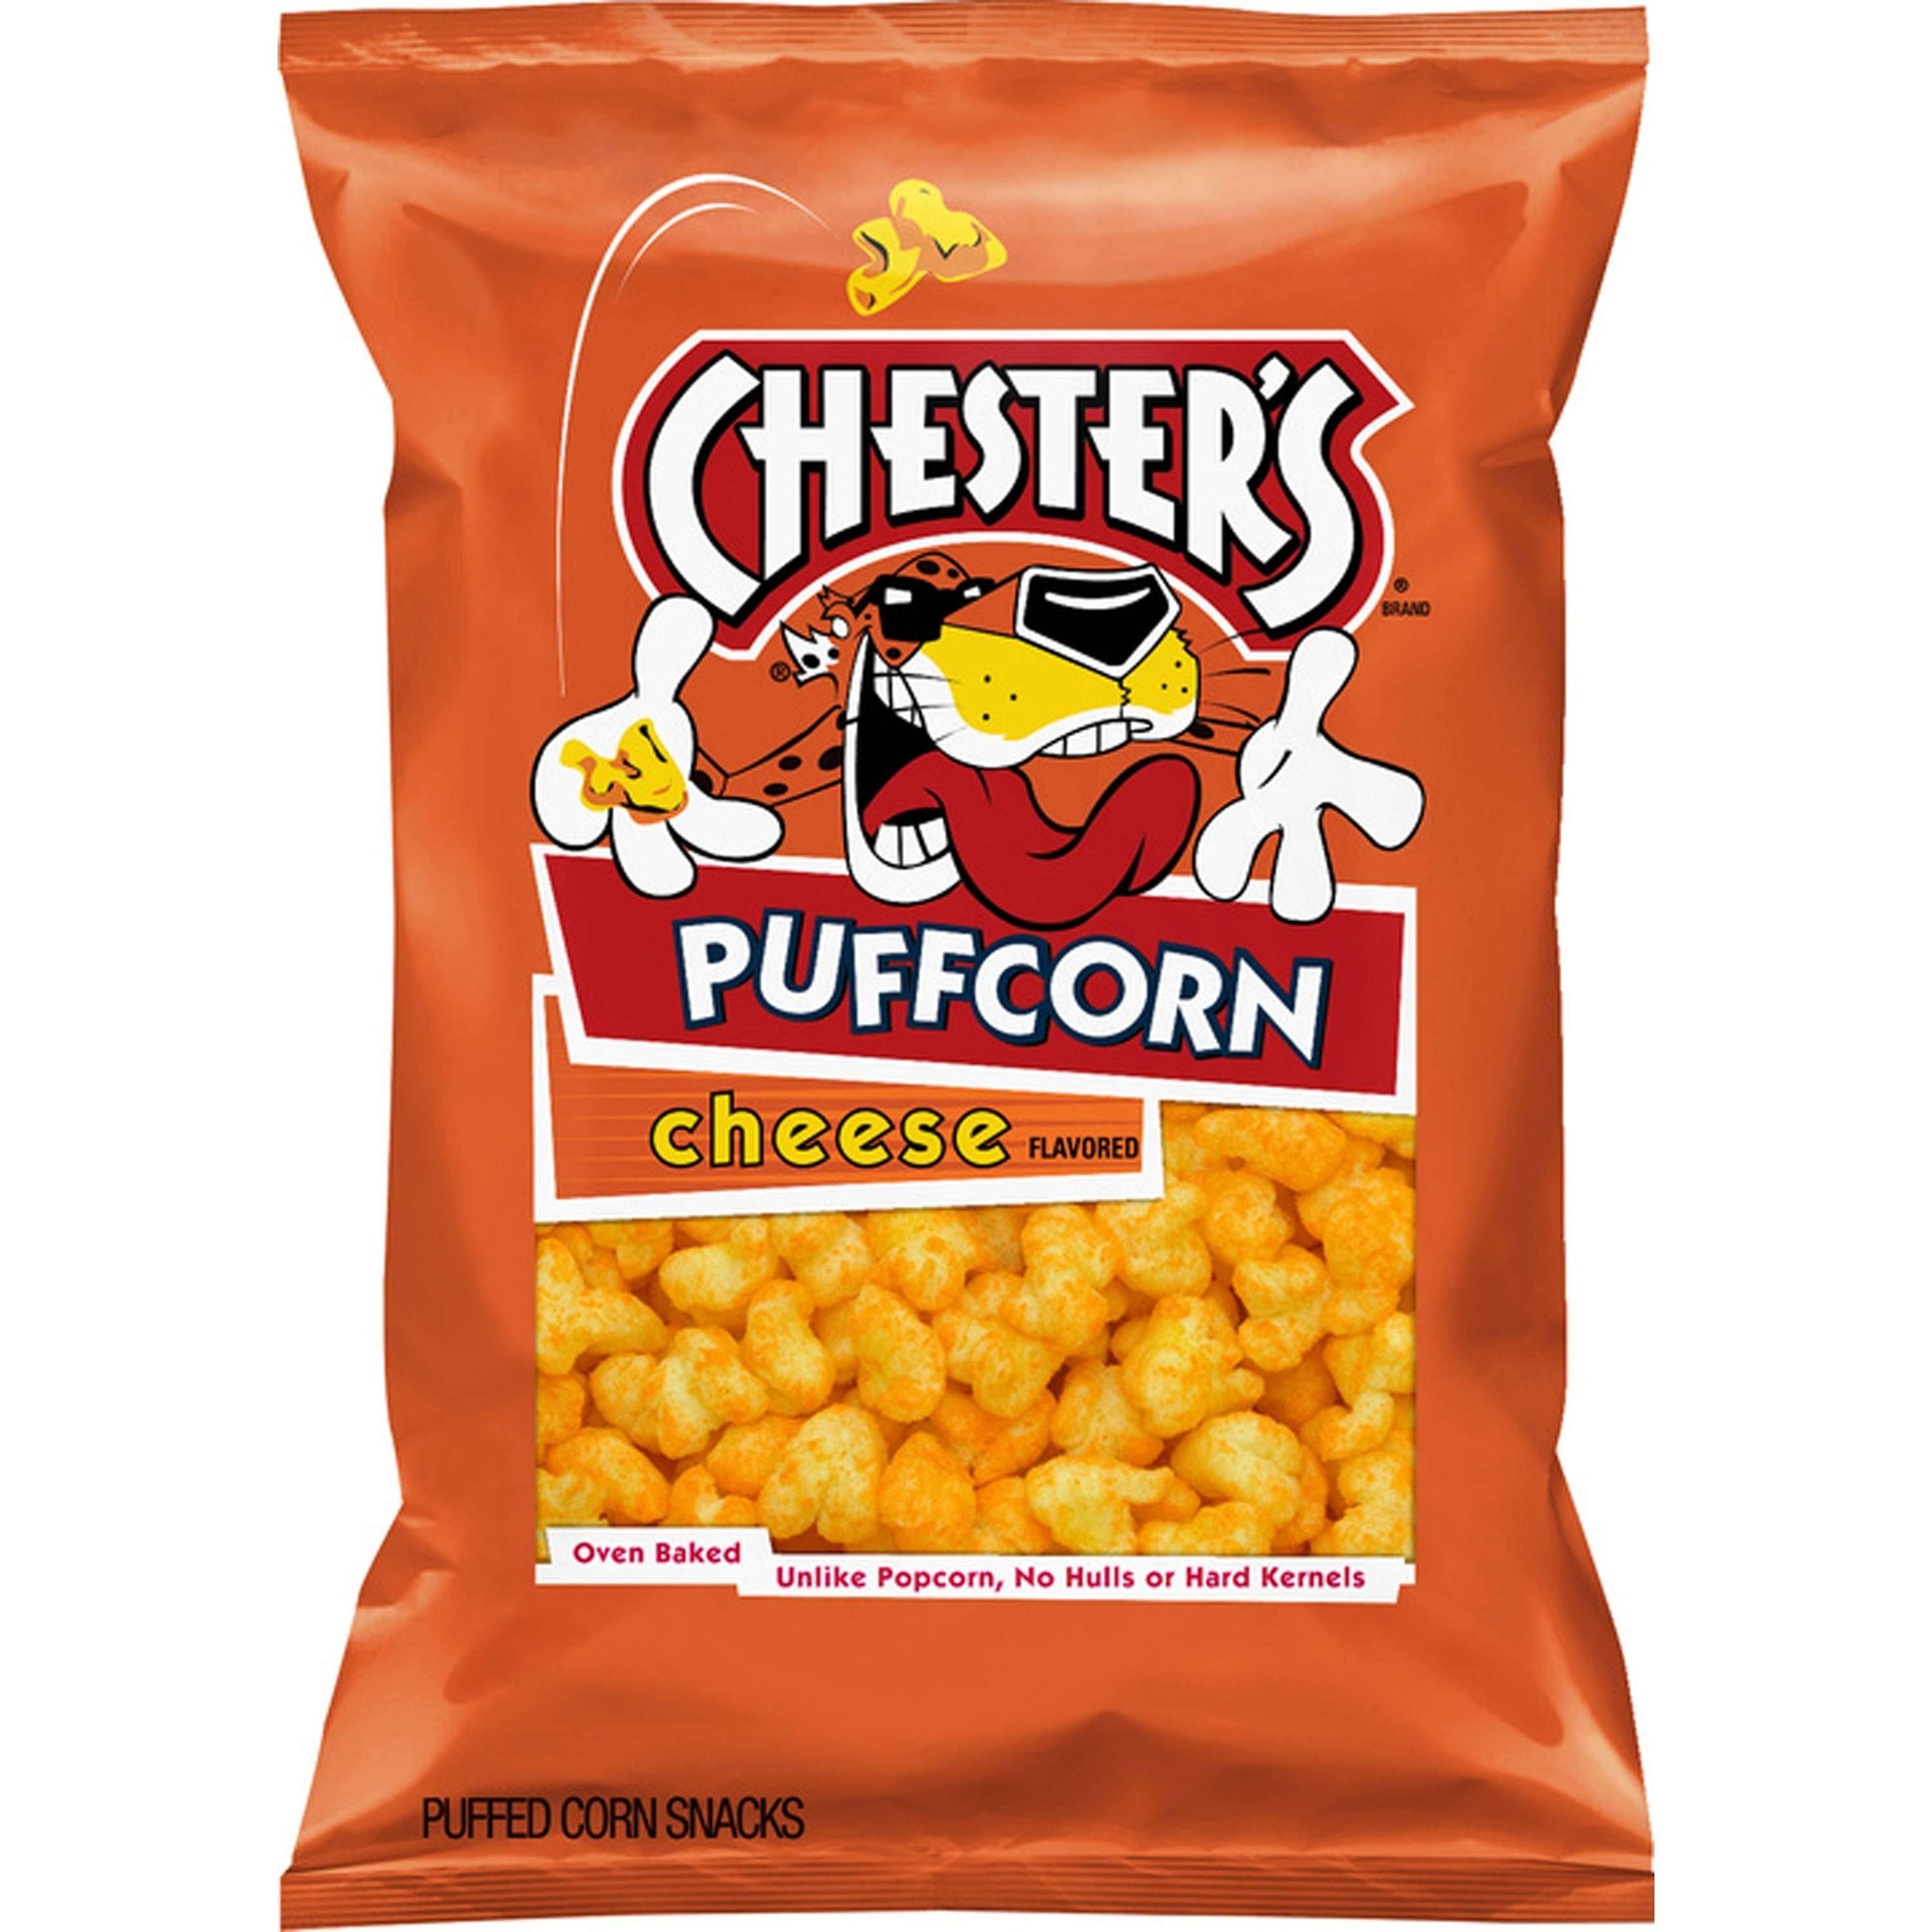 Chesters Puffcorn, Cheese Flavored - 4.25 oz